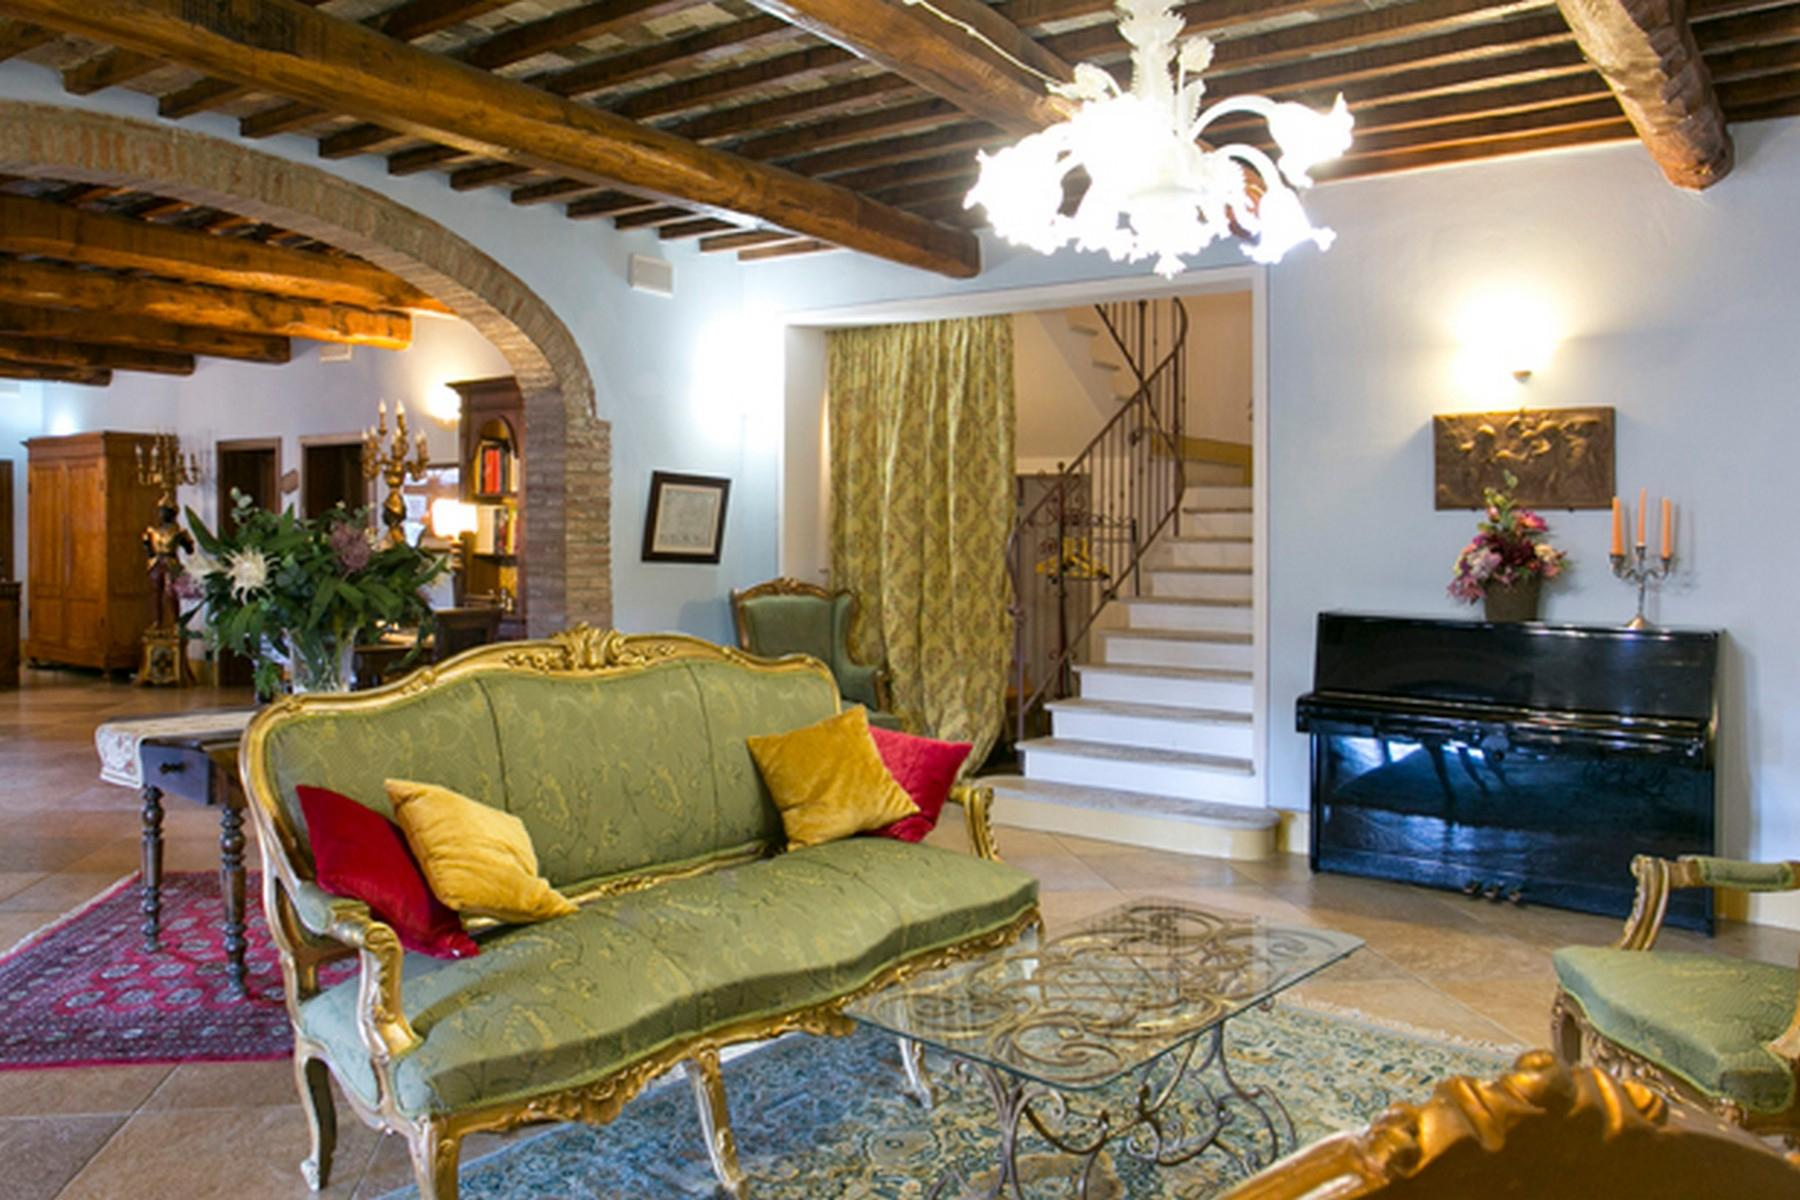 Beautiful Boutique Hotel with Restaurant and SPA in the hills of Torrita di Siena - 31